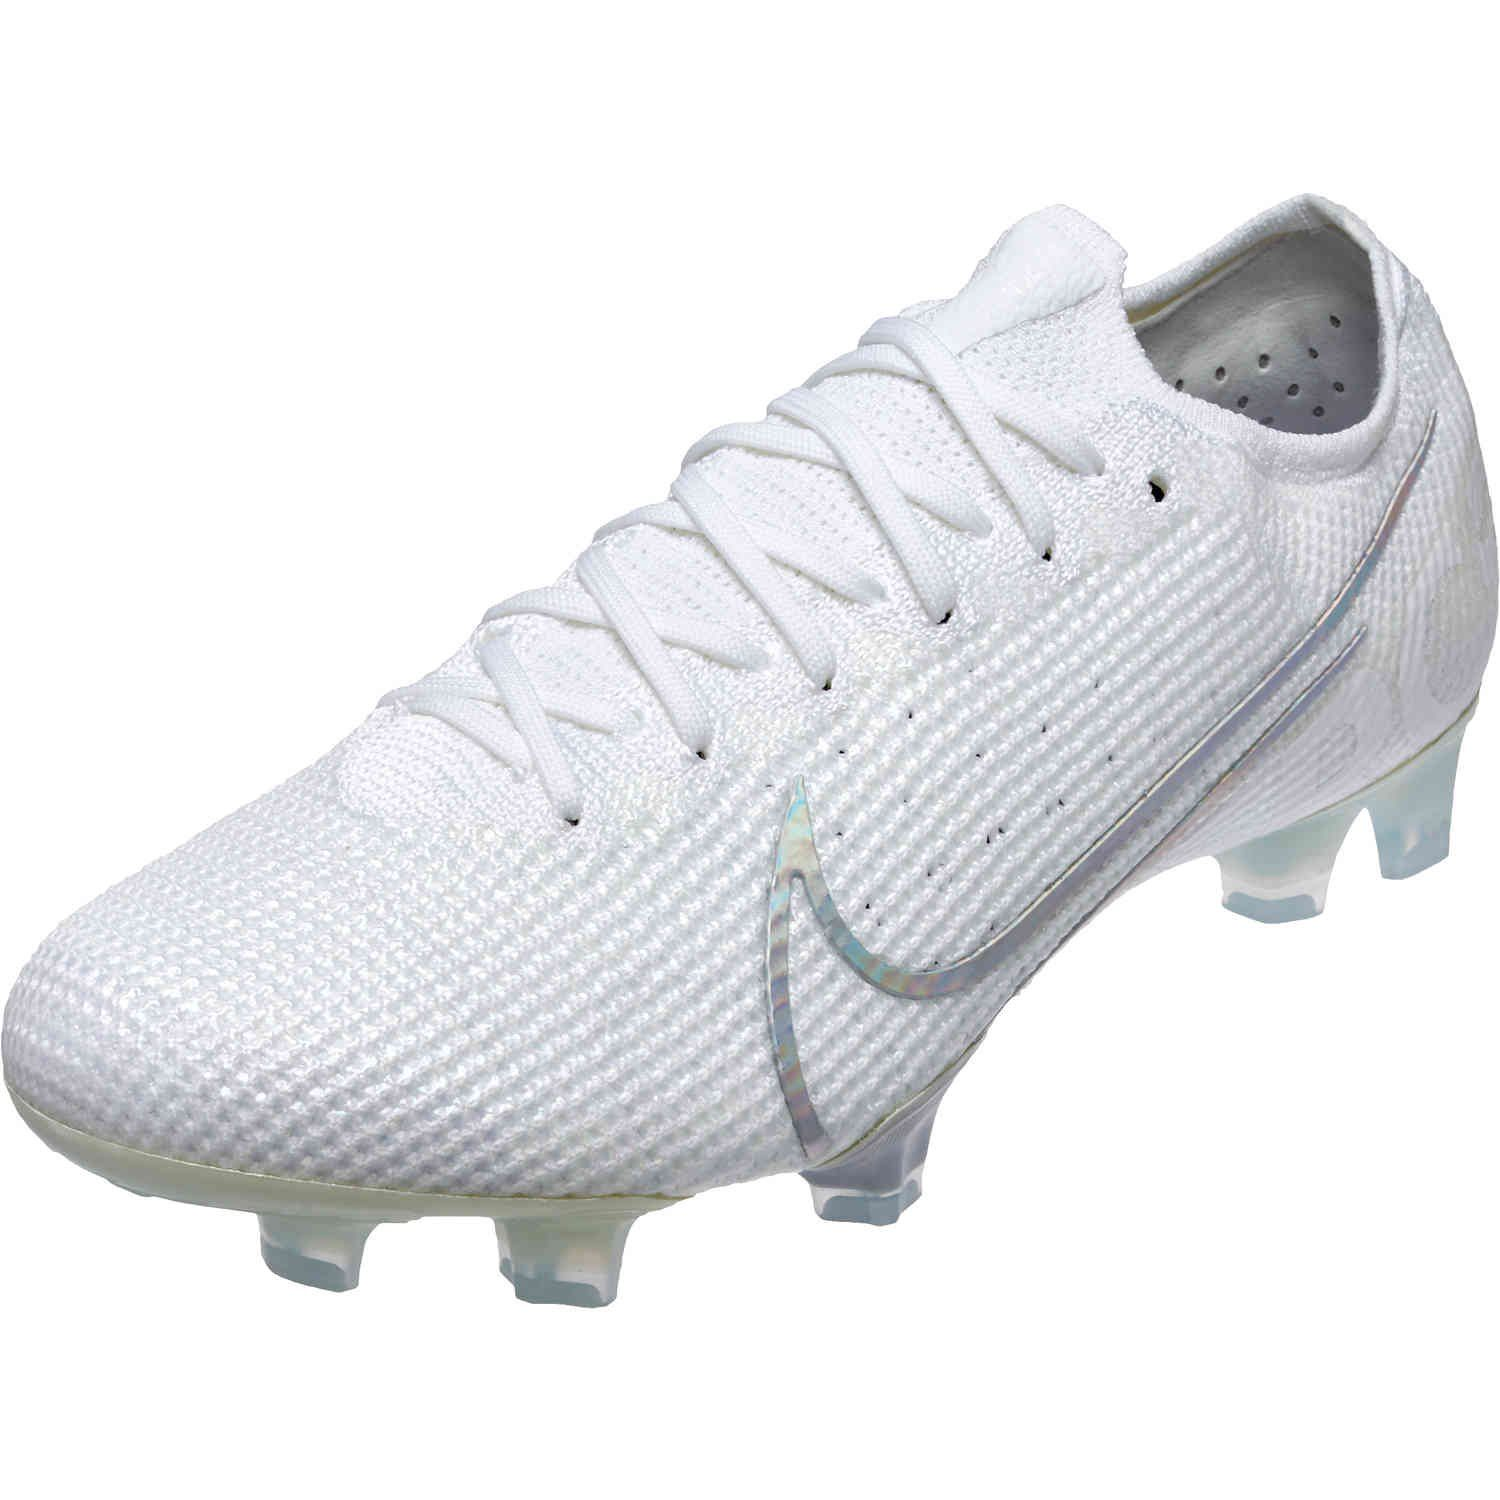 Nike Mercurial Vapor 13 Elite Fg Nuovo White Soccerpro Cool Football Boots Adidas Soccer Shoes Soccer Cleats